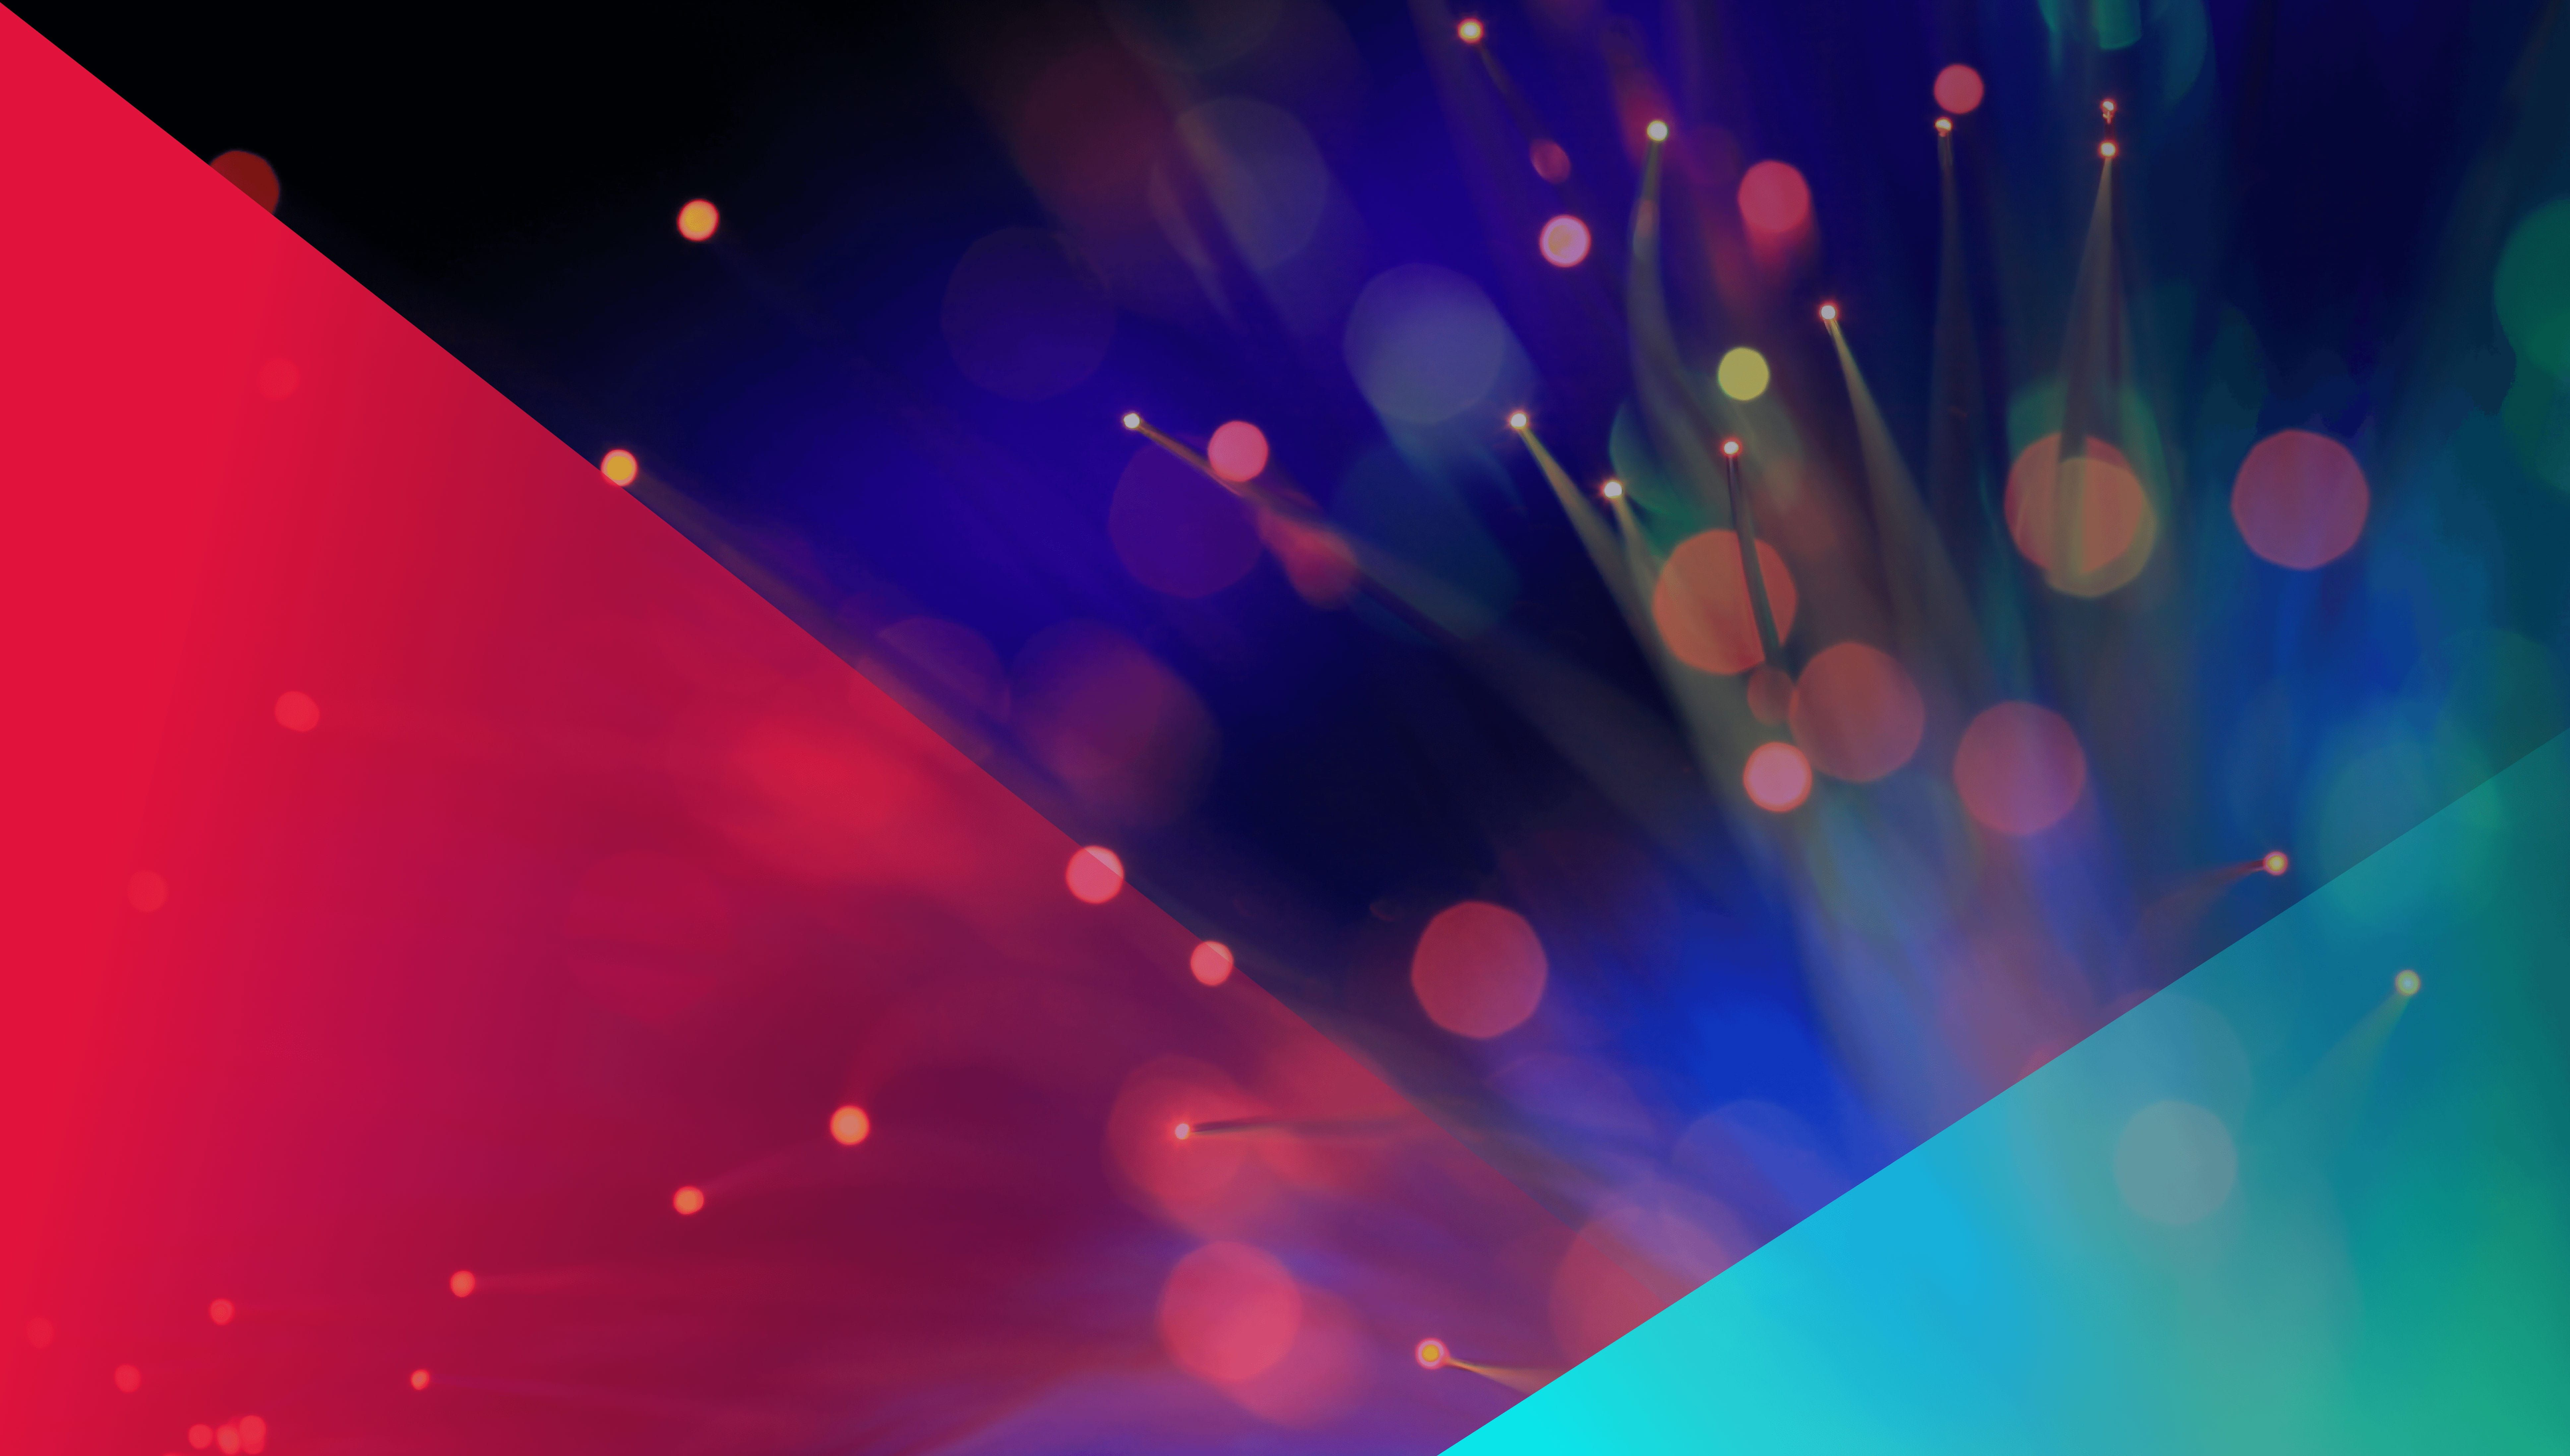 Colorful Blurred Boken Lights 8k Abstract Desktop Wallpapers